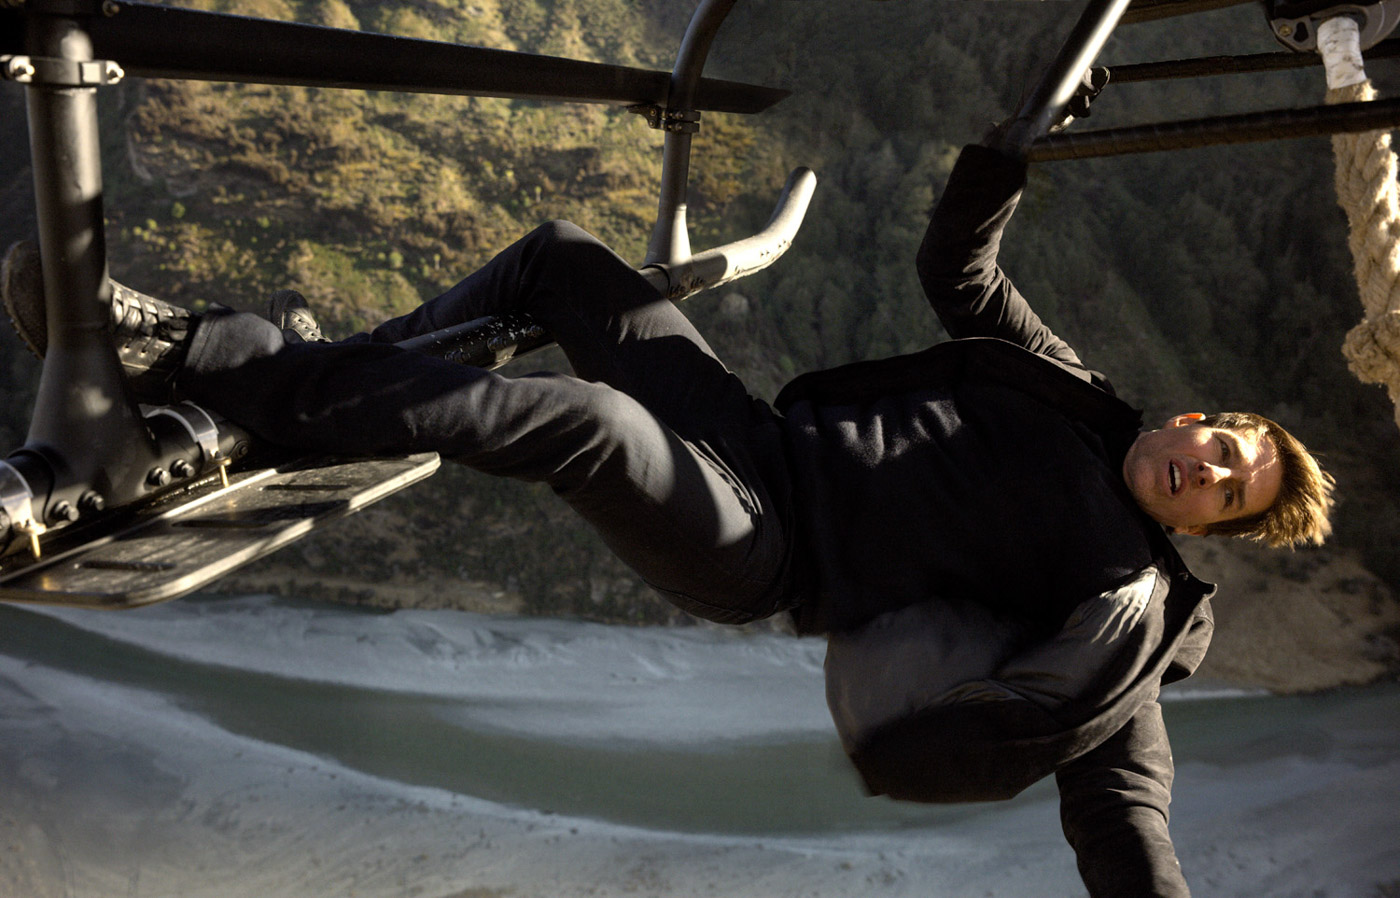 ACTION. Tom Cruise shows off he can do a lot of action again in the film.